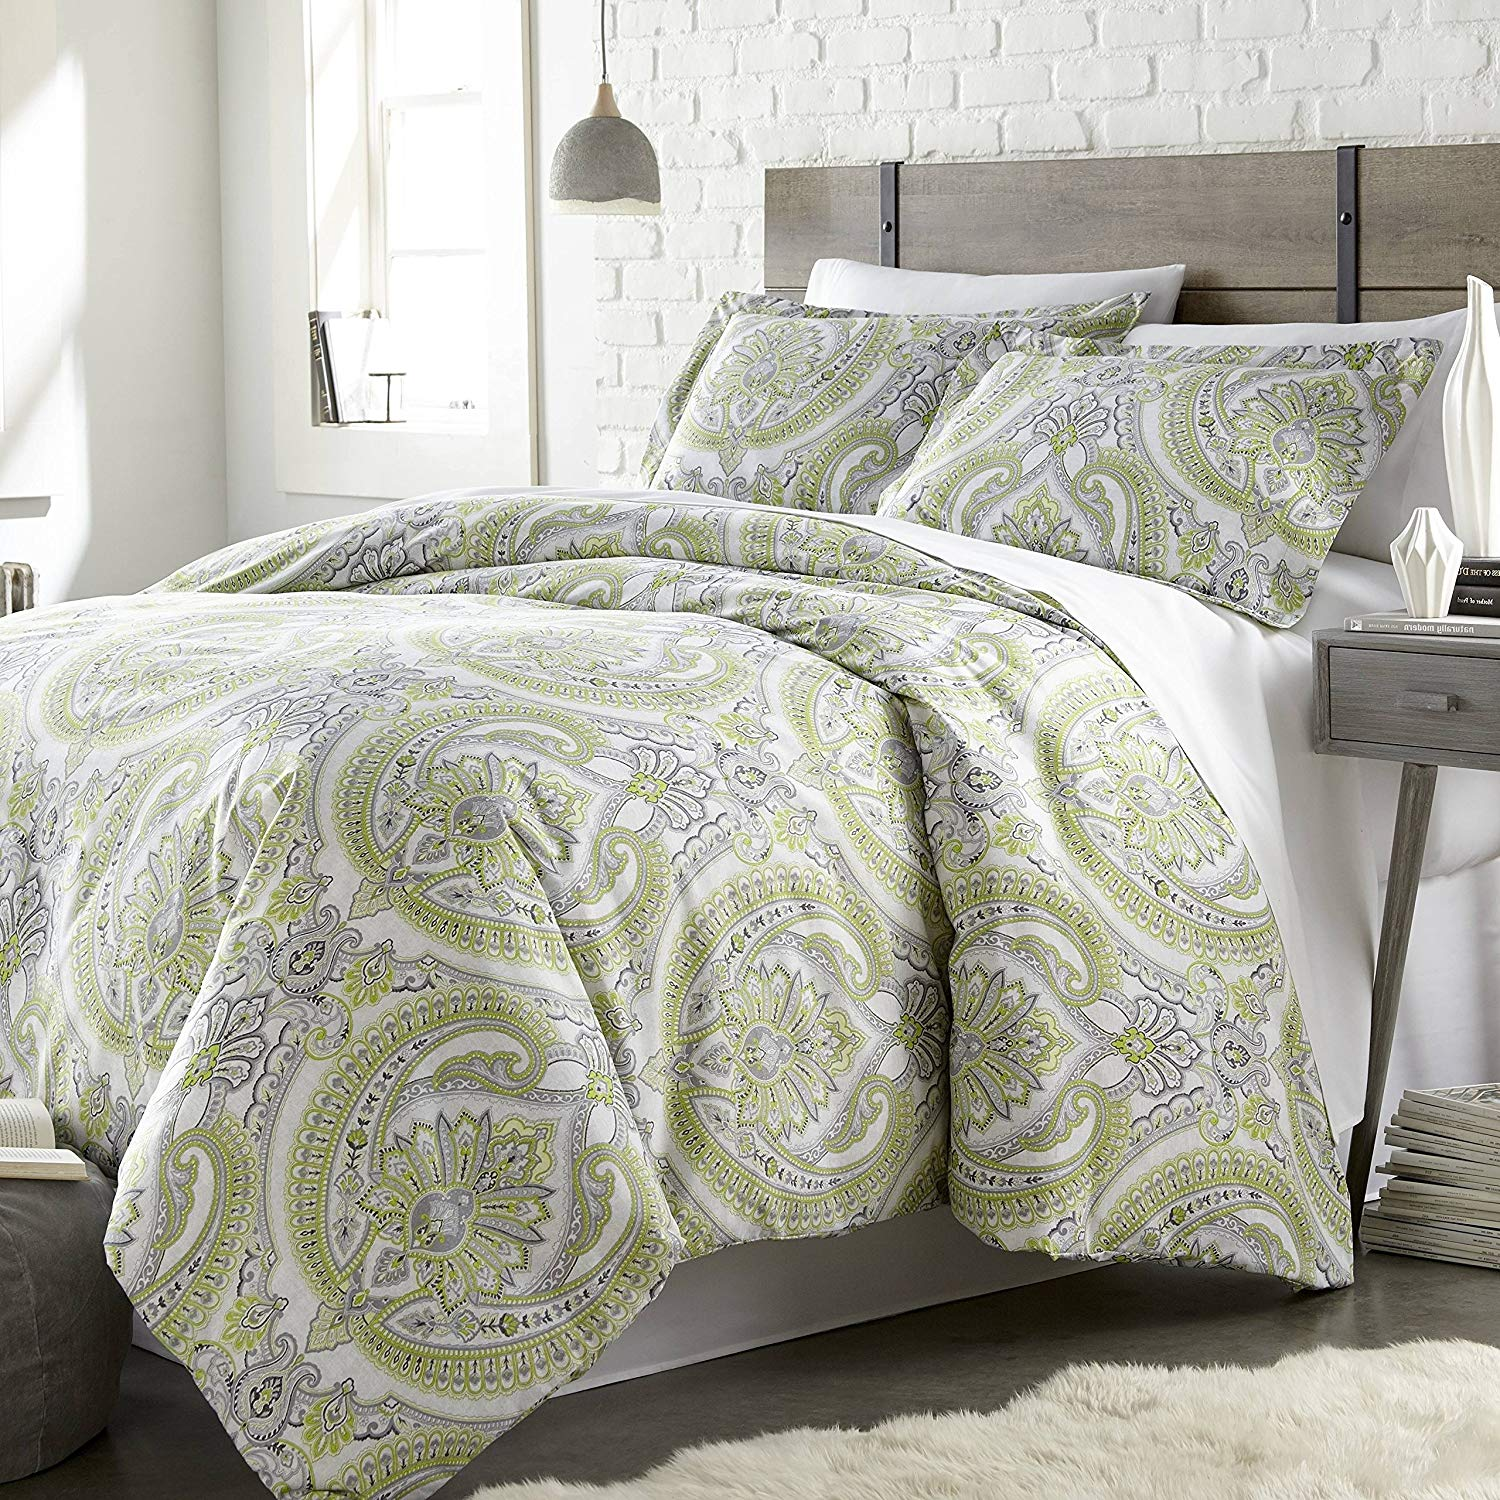 3 Piece Green Grey Classic Paisley Pattern Duvet Cover King/Cal King Set, Beautiful Girly Motif Floral Reversible Bedding Gray White Bohemian Textured Design, Classic Style, Bright Colors, Microfiber